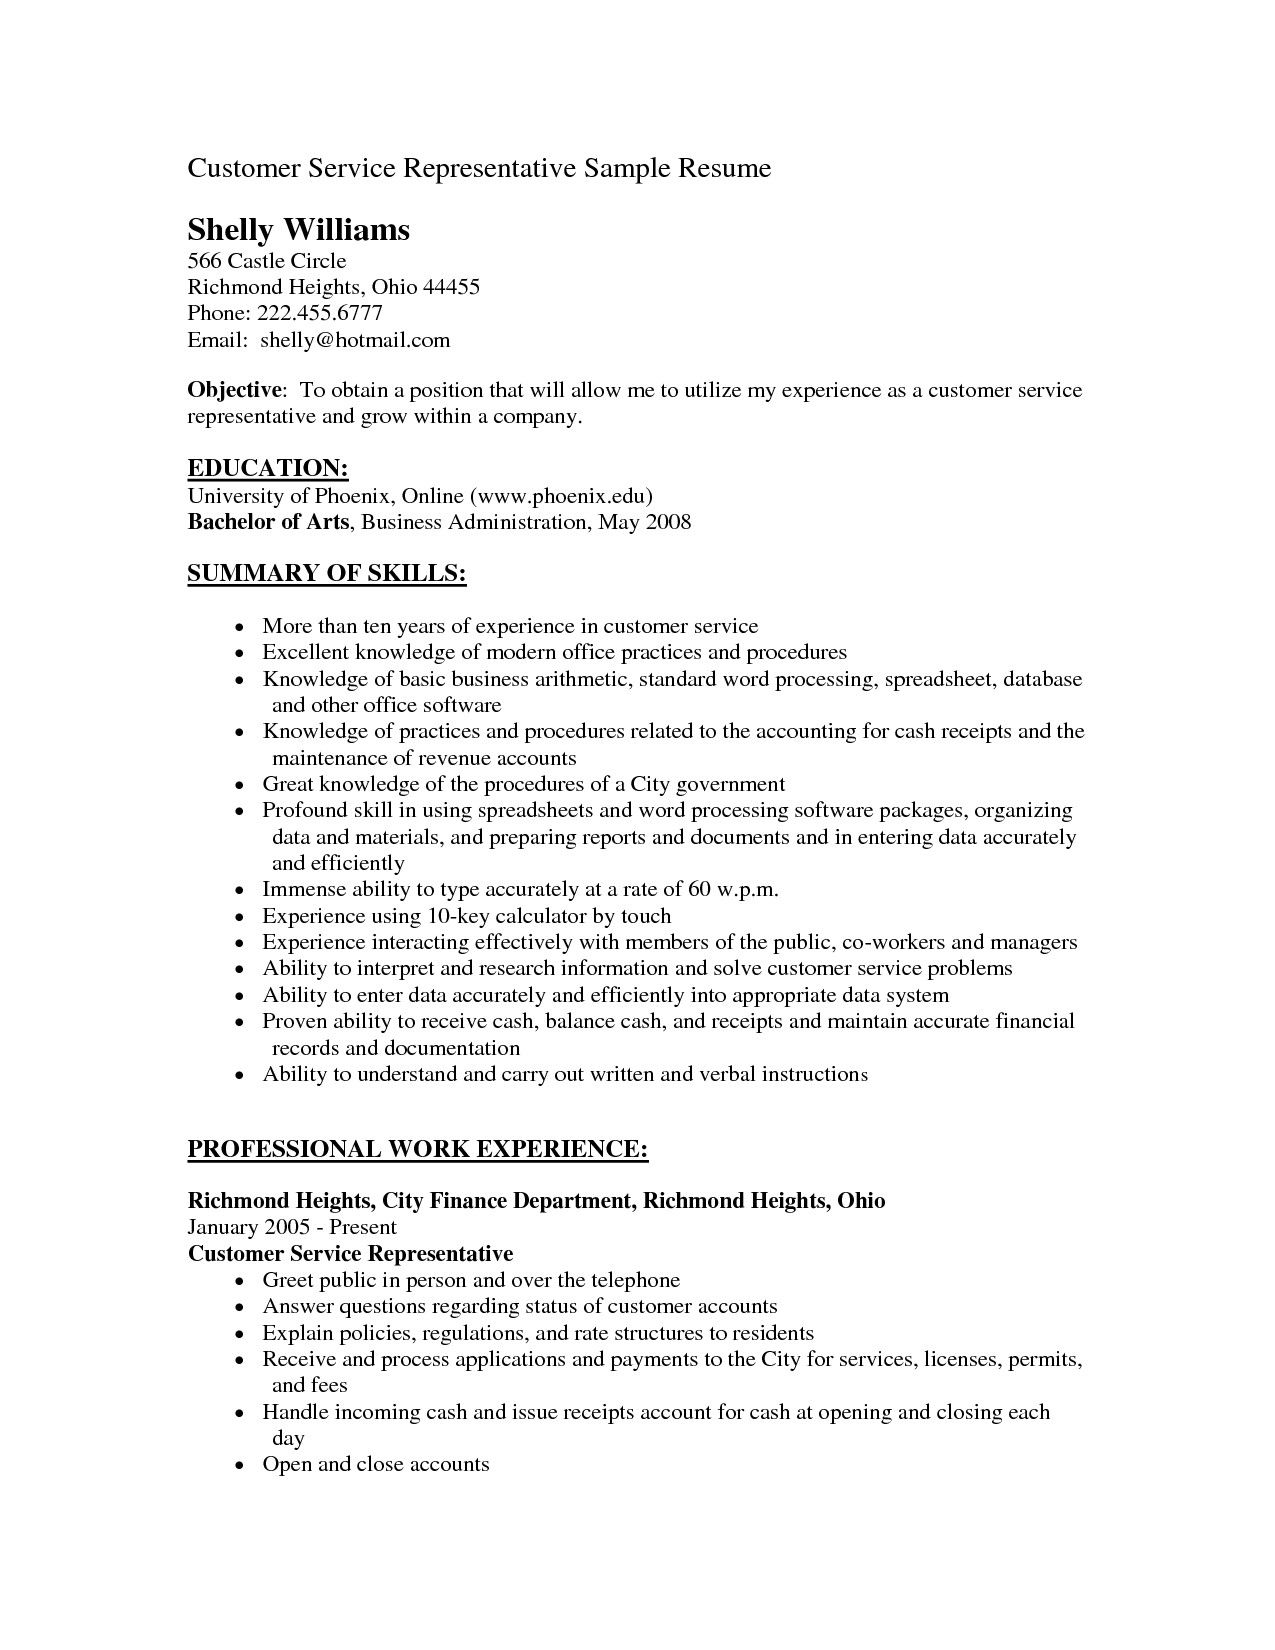 pin by sktrnhorn on resume letter ideas objective examples job statement opening best for Resume Resume Opening Statement Examples